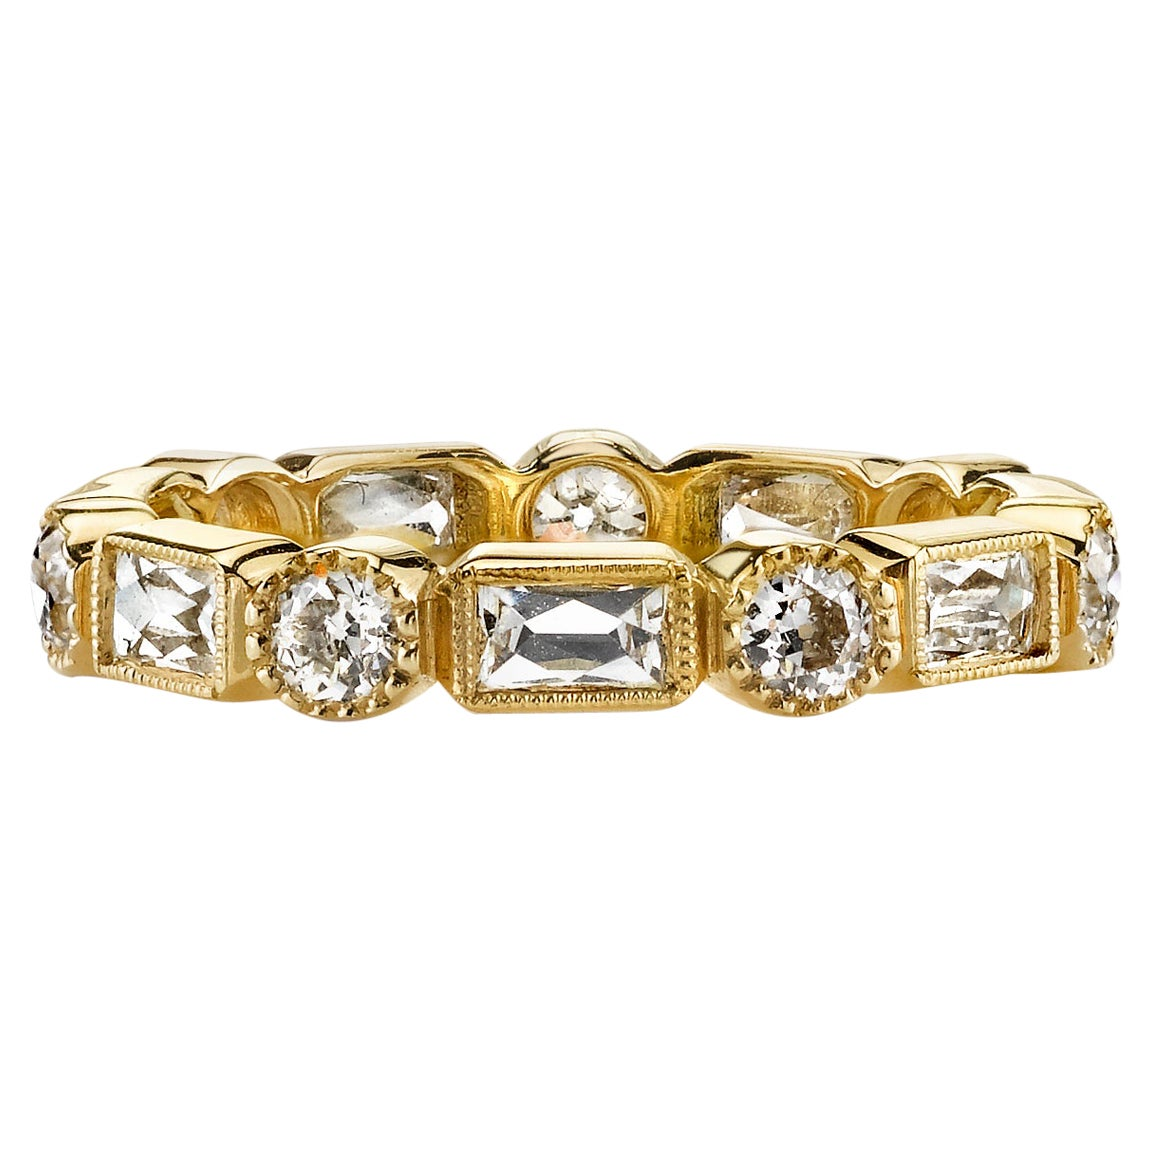 Approx. 2.00 Carat Mixed Cut Diamonds Set in a Handcrafted Eternity Band.